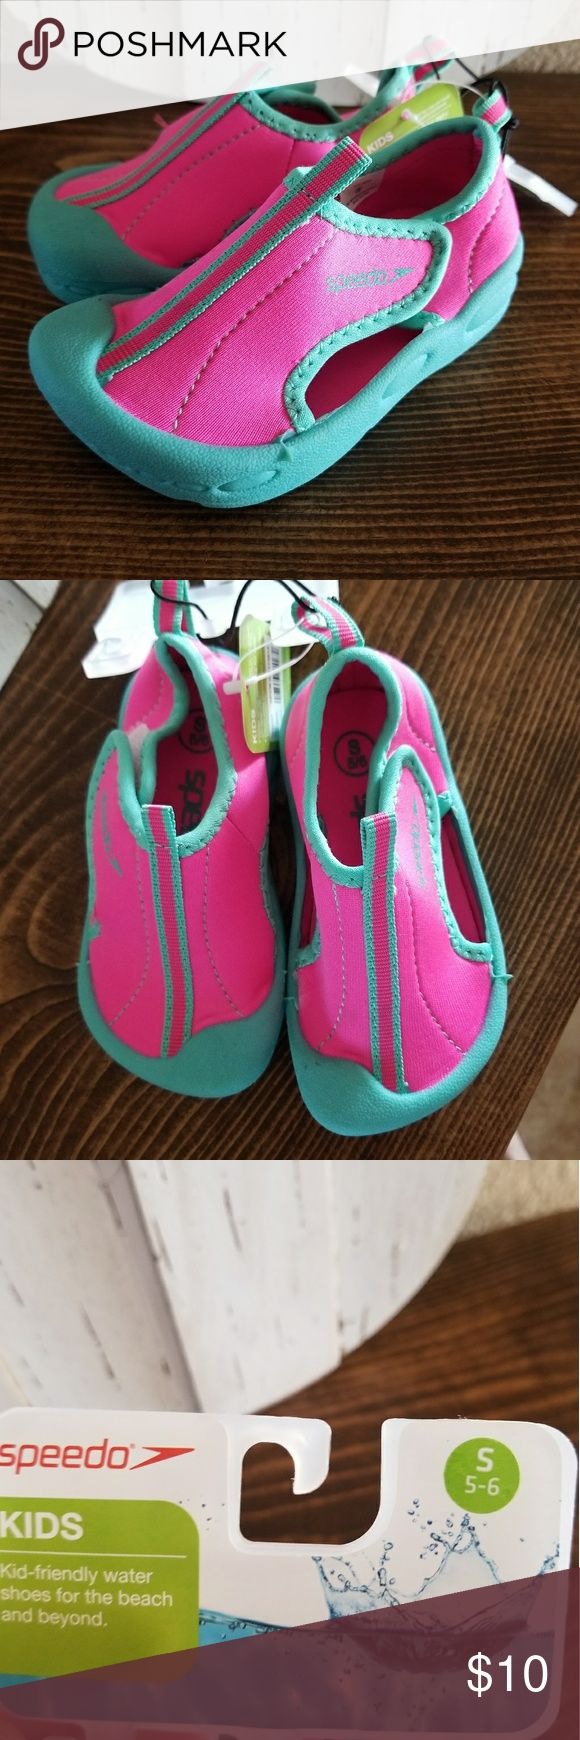 Toddler Speedo water shoes Size 5/6  Wide strape opening for easy on & off Breathable side panels on side of the shoe Speedo Shoes Water Shoes